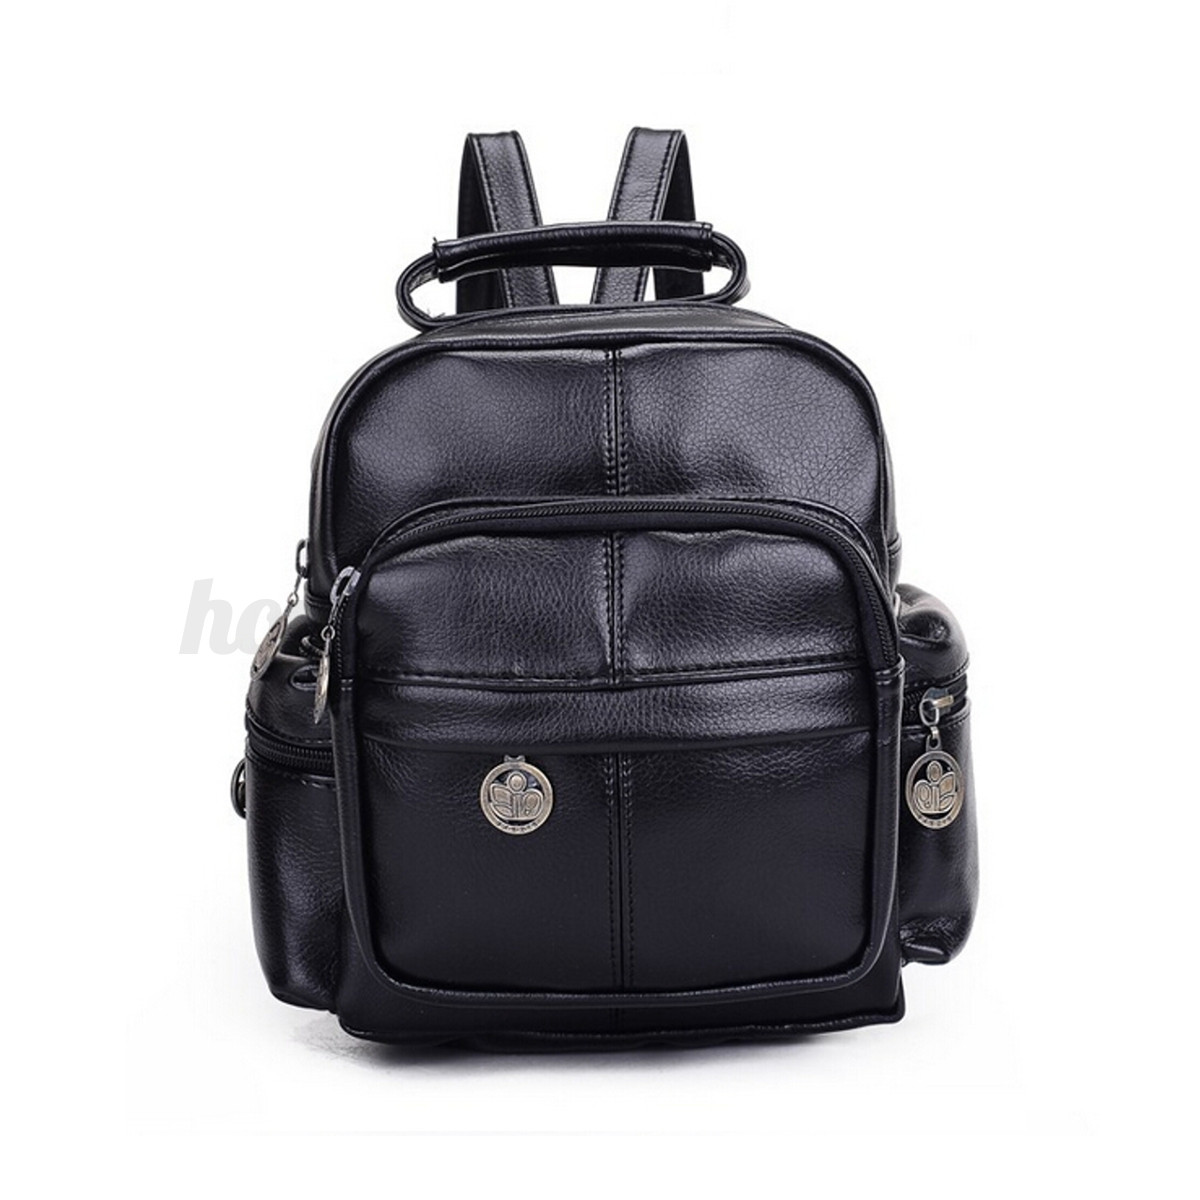 Shop backpack purses in different shapes, sizes and colors; and find a bag that styles well with casual jeans or dress for school or a weekend getaway. Choose from various materials like canvas, faux leather, leather and more and experiment with different features .